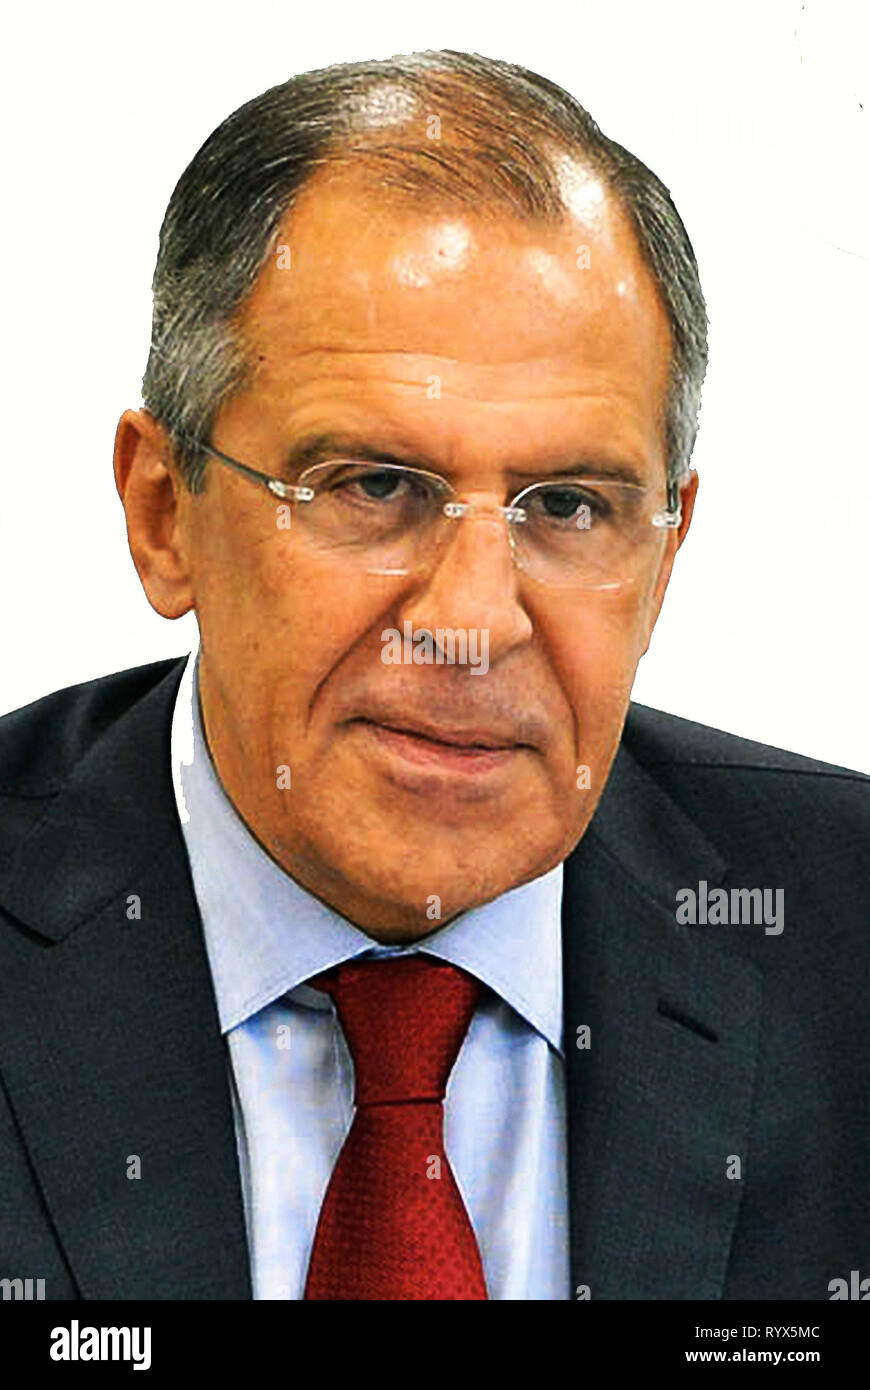 Sergey Wiktorowitsch Lavrov - *21.03.1950 - Russian politician and Foreign Minister of the Russian Federation. - Stock Image